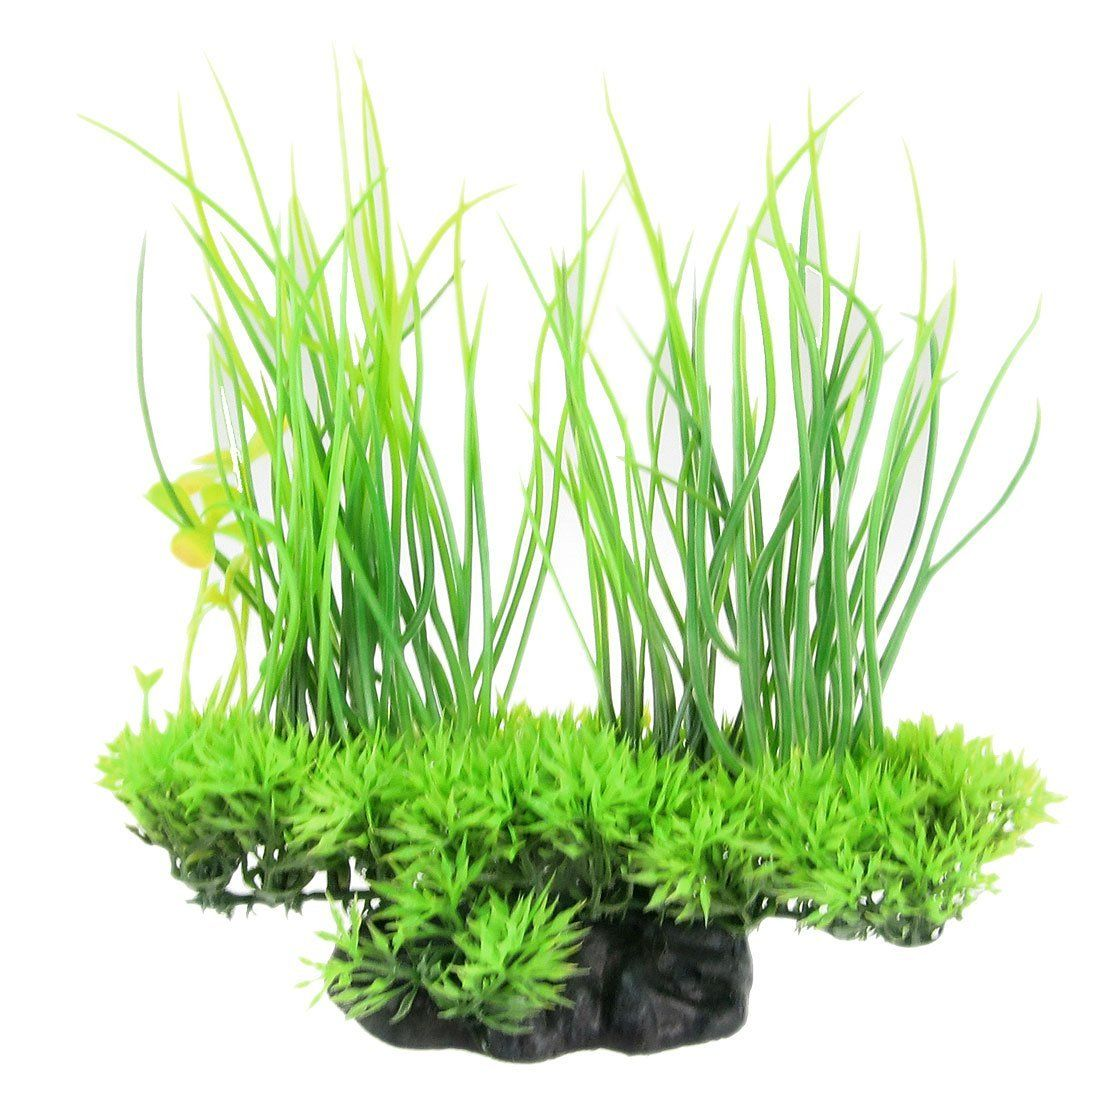 Aquarium fish tank plants - Made From Plastic Material This Height Artificial Plant Is Perfect For Your Fish Tank It Can Colorize The Fish Tank And Afford Things For Pet Fish To Play